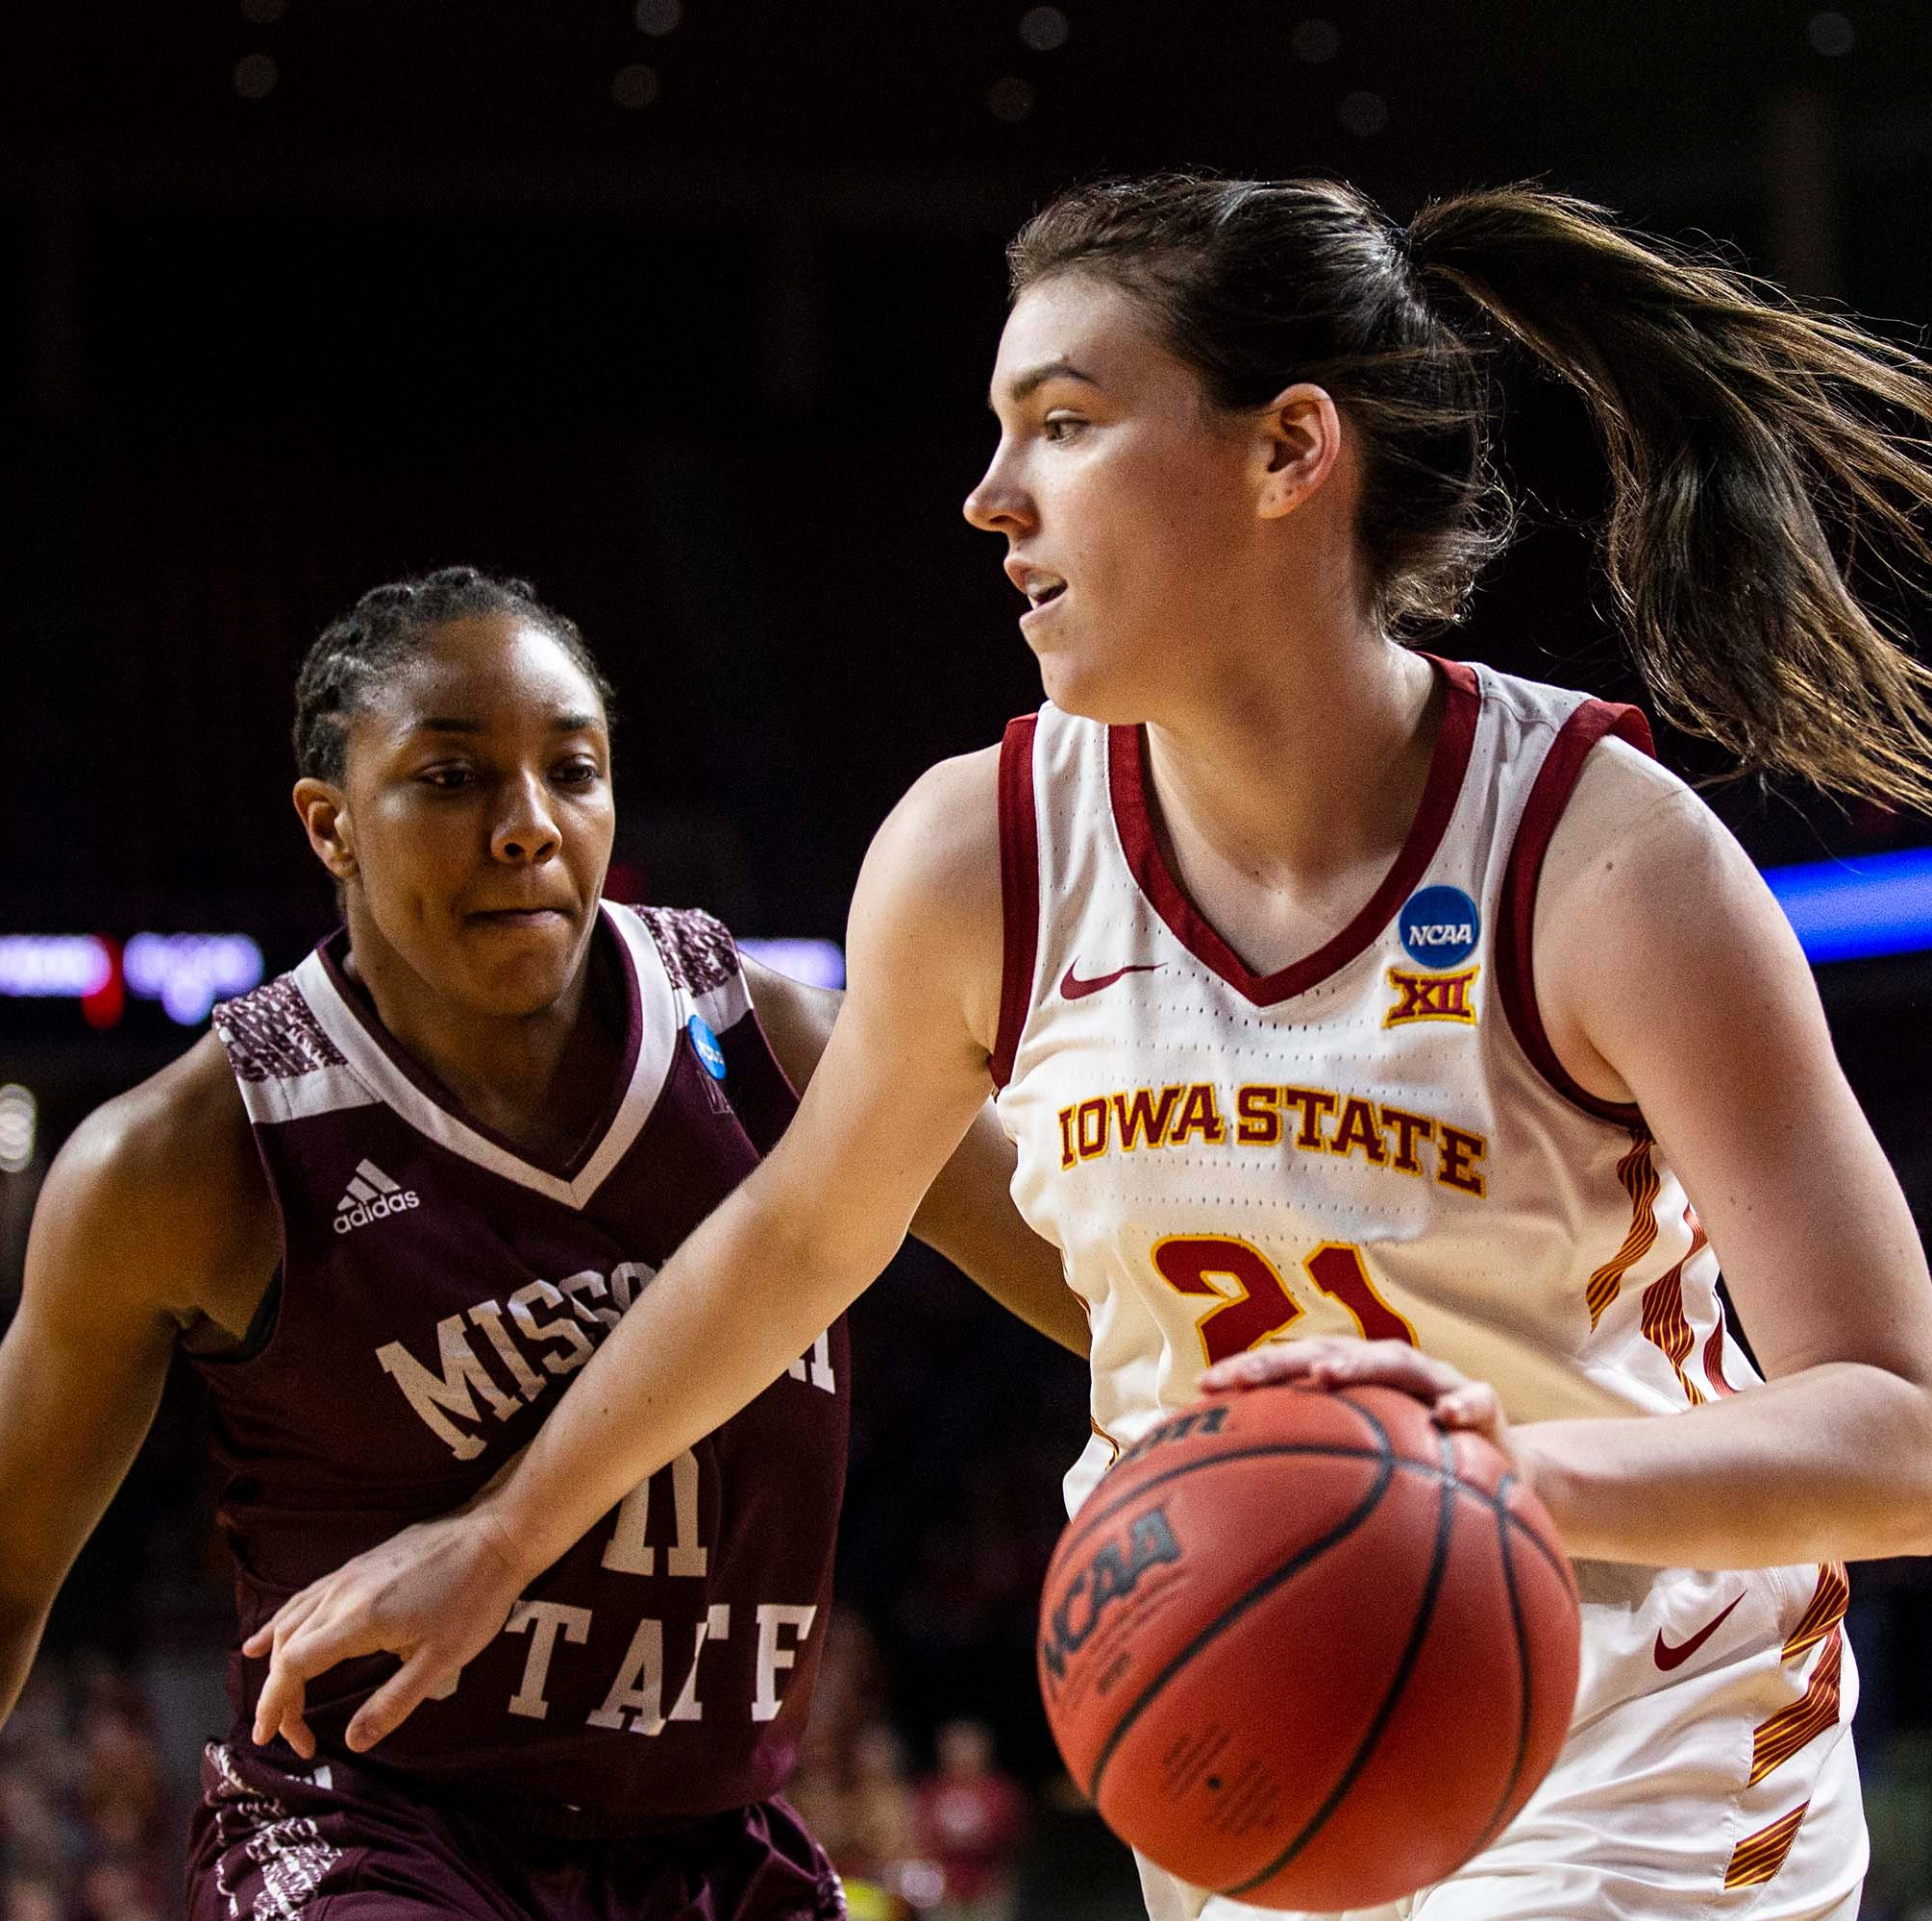 Former Iowa State star Bridget Carleton ready to begin WNBA career